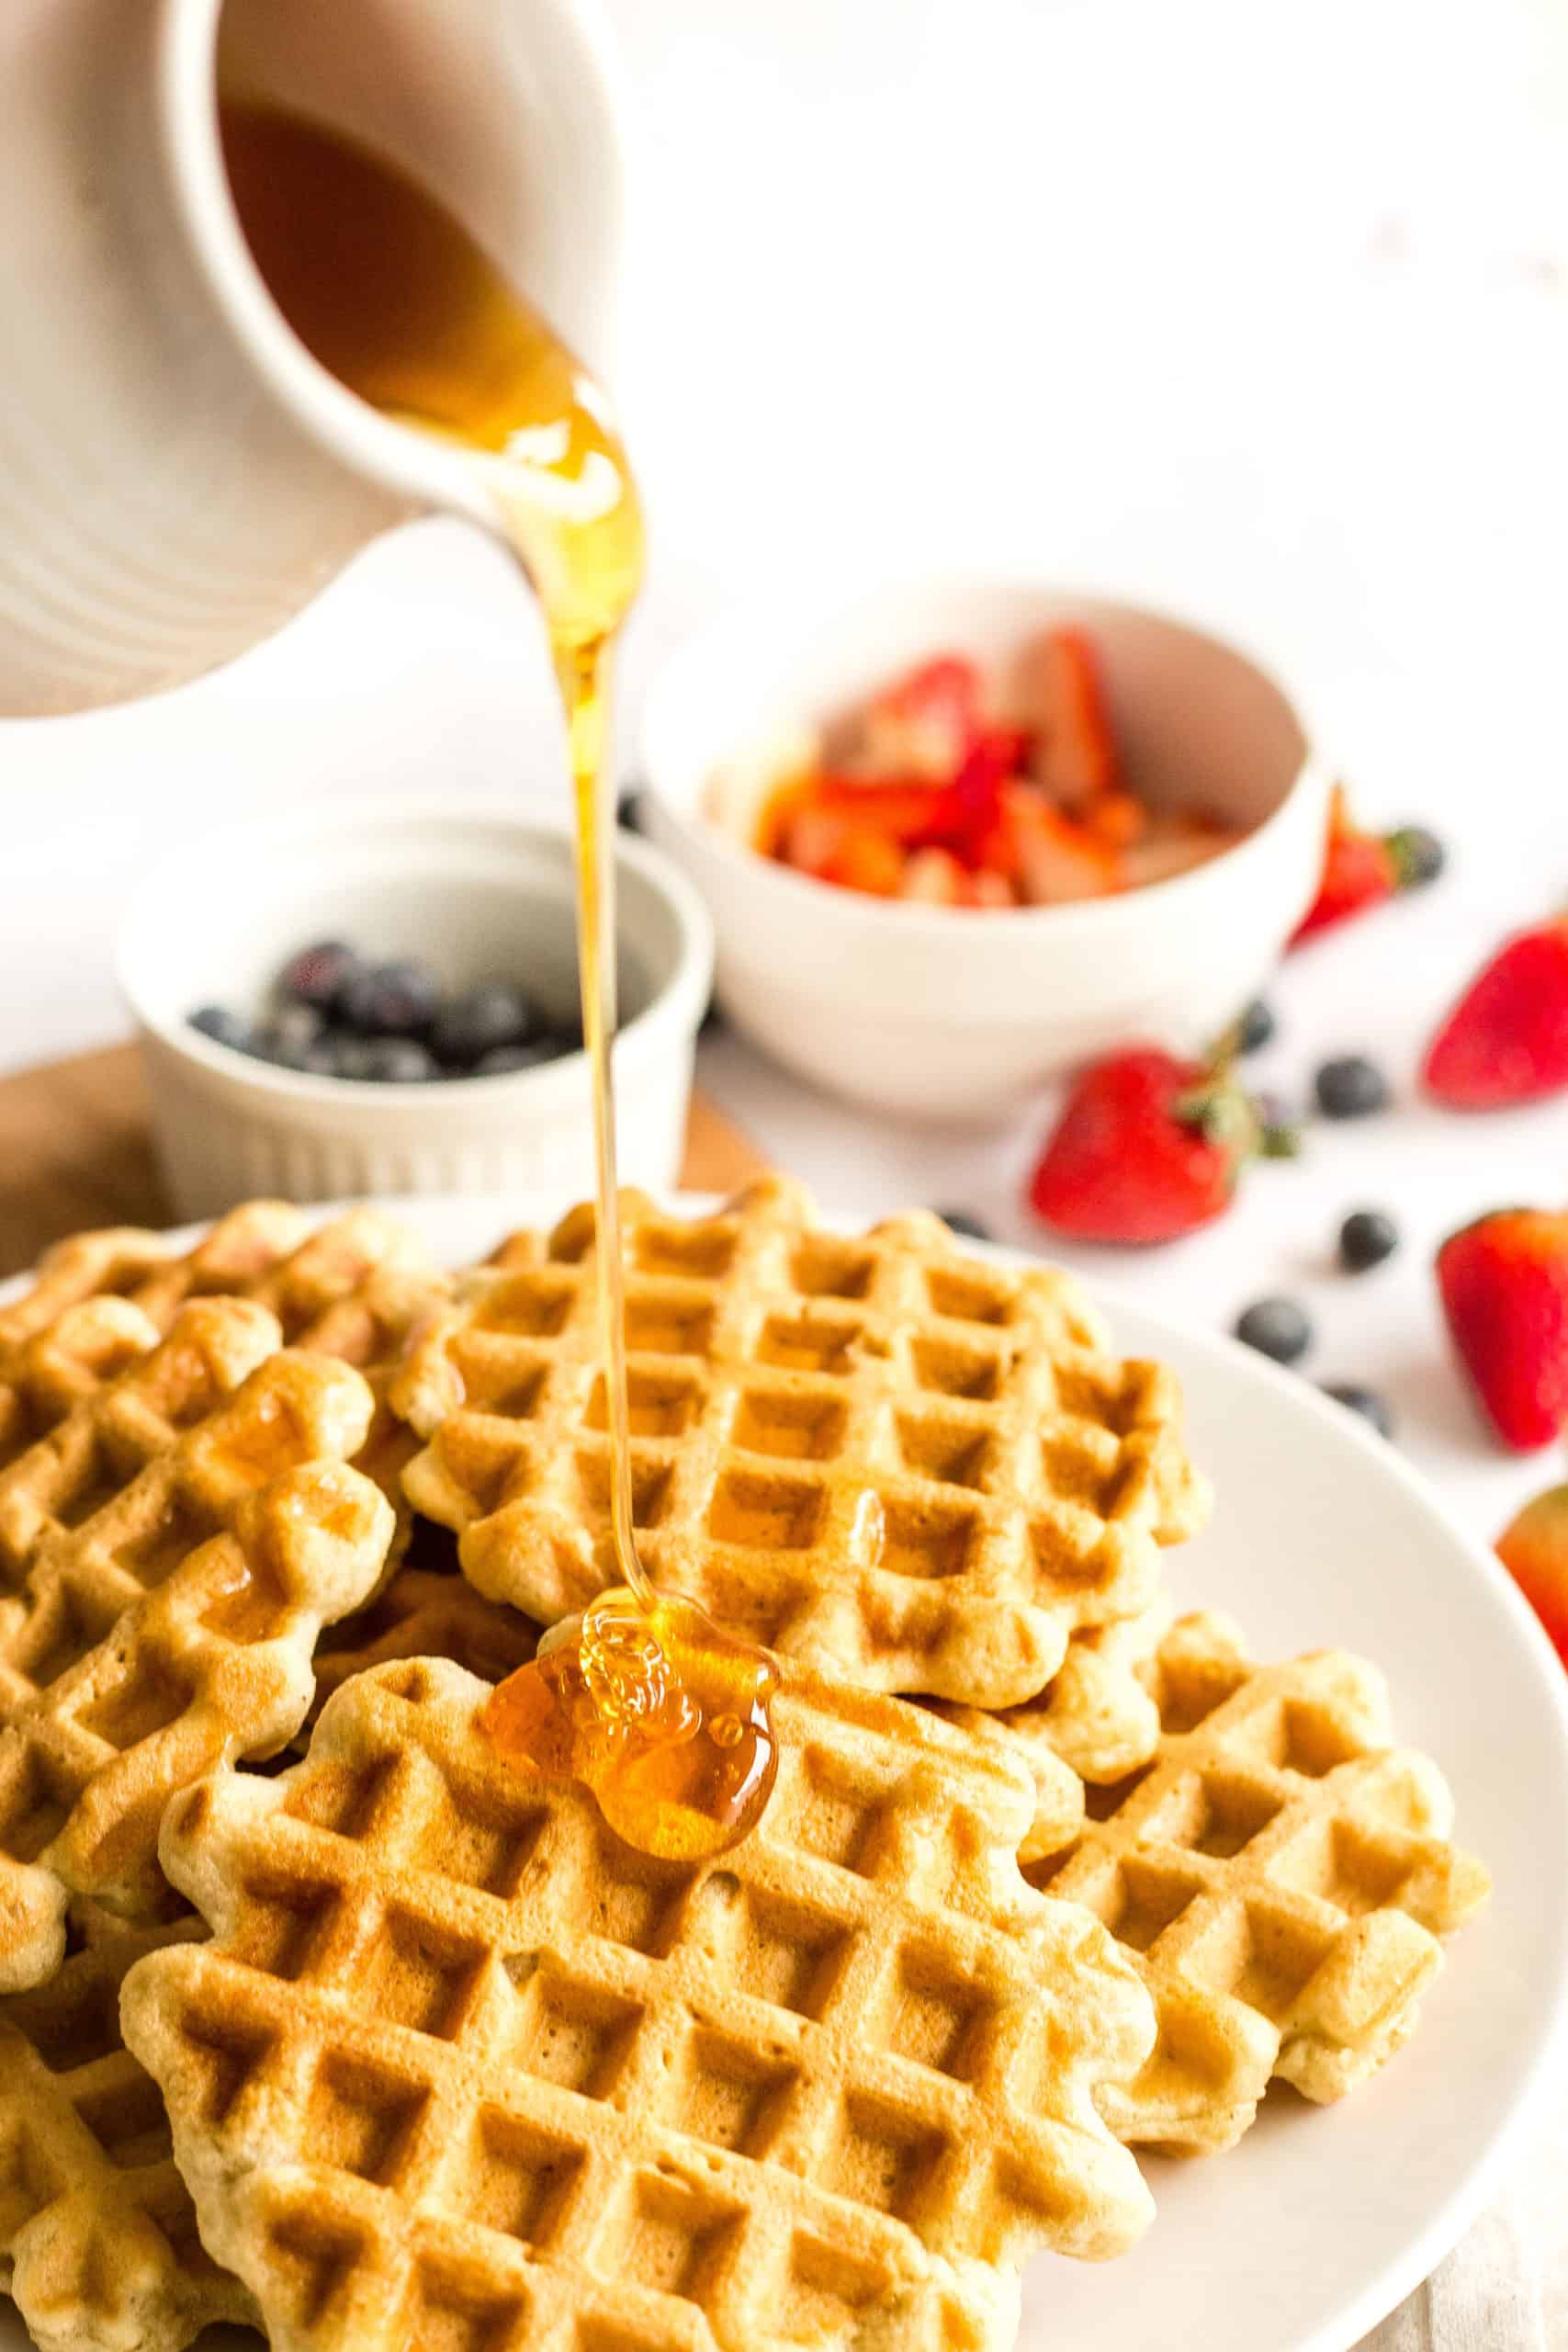 Maple syrup being drizzled over a big plate of waffles.